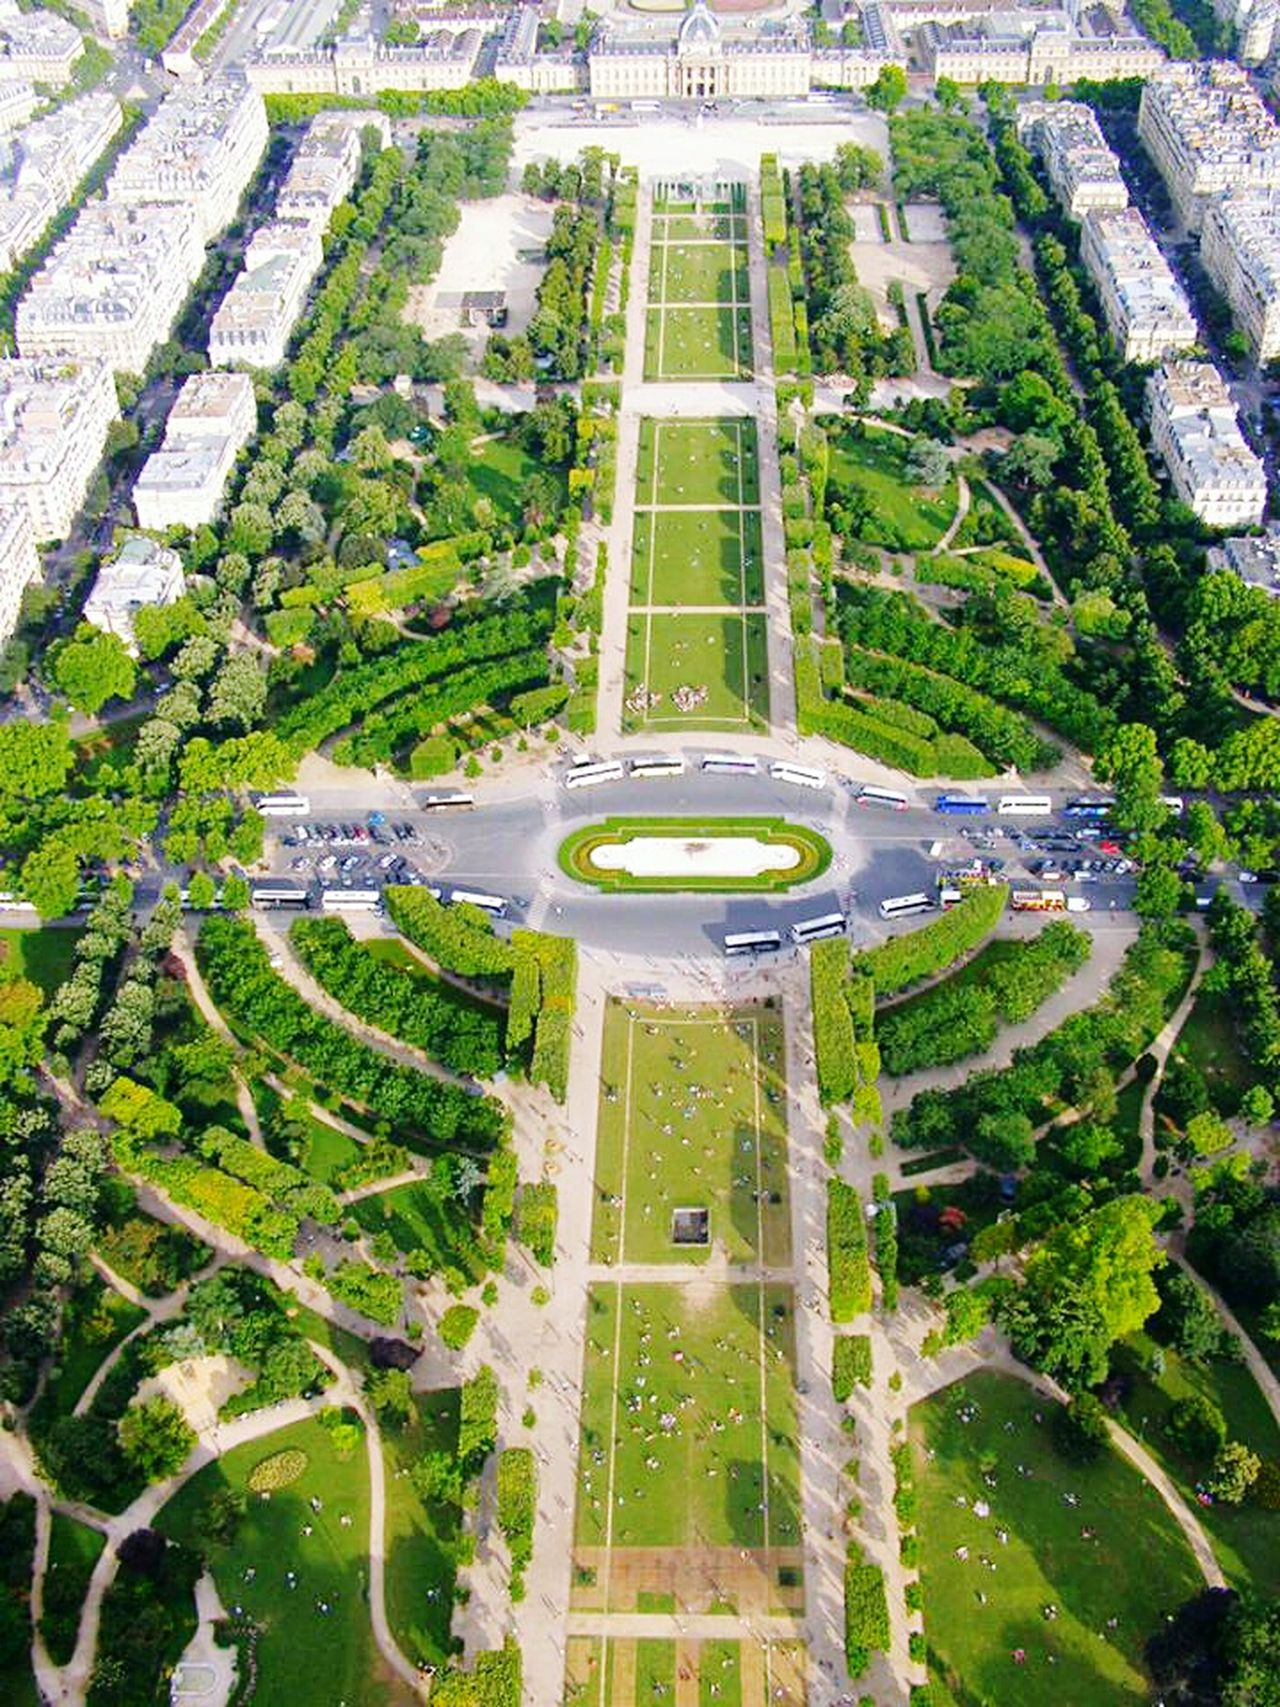 Mars Champs De Mars De Mars Aerial View Green Color High Angle View No People Tree Day Outdoors plane Plane Extreme Terrain Architecture Cityscape Beauty In Nature Tree Nature Eiffel Tower Eiffeltower🇫🇷😛😛 Paris Built Structure Sky Panoramic